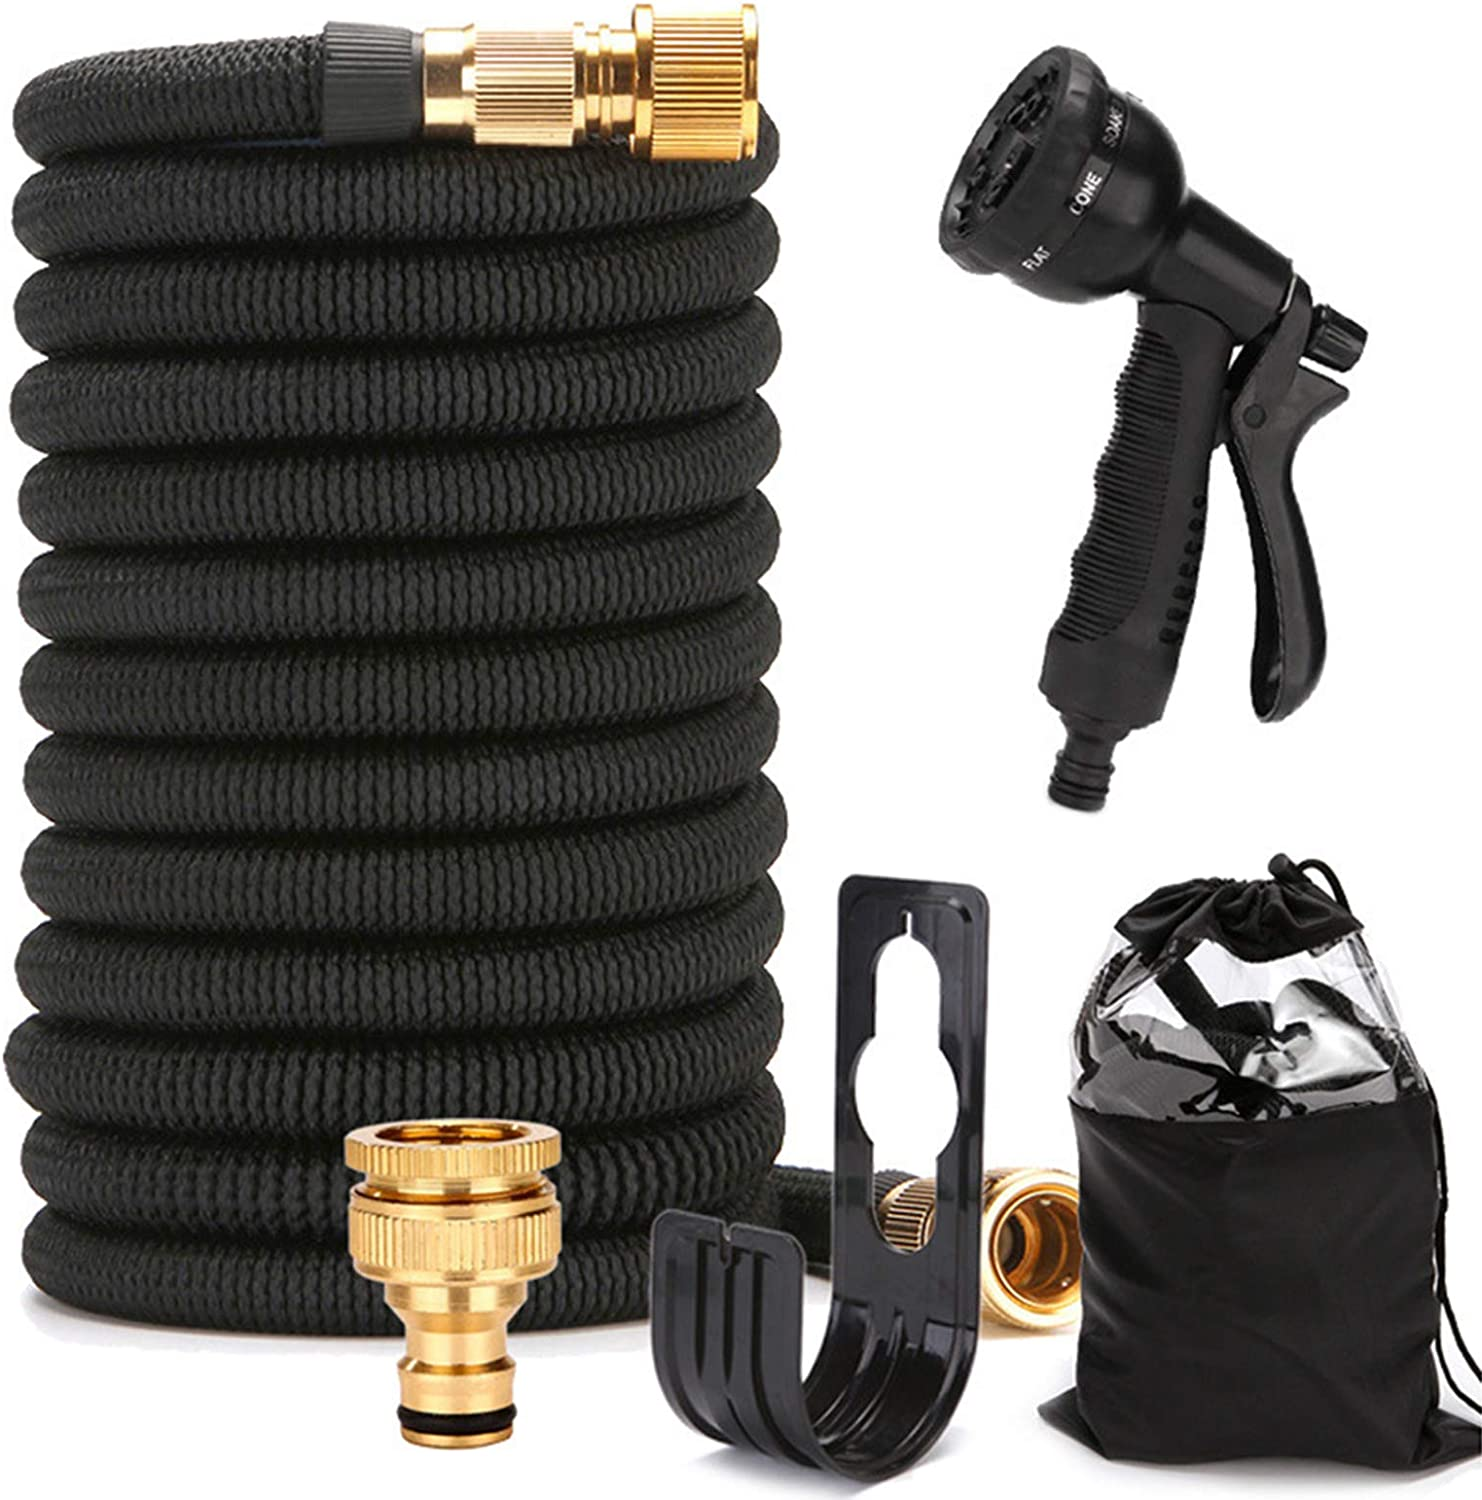 Now on sale PUYBVA Garden Hoses Expandable Flexible Spray Special price for a limited time G with 8 Functions